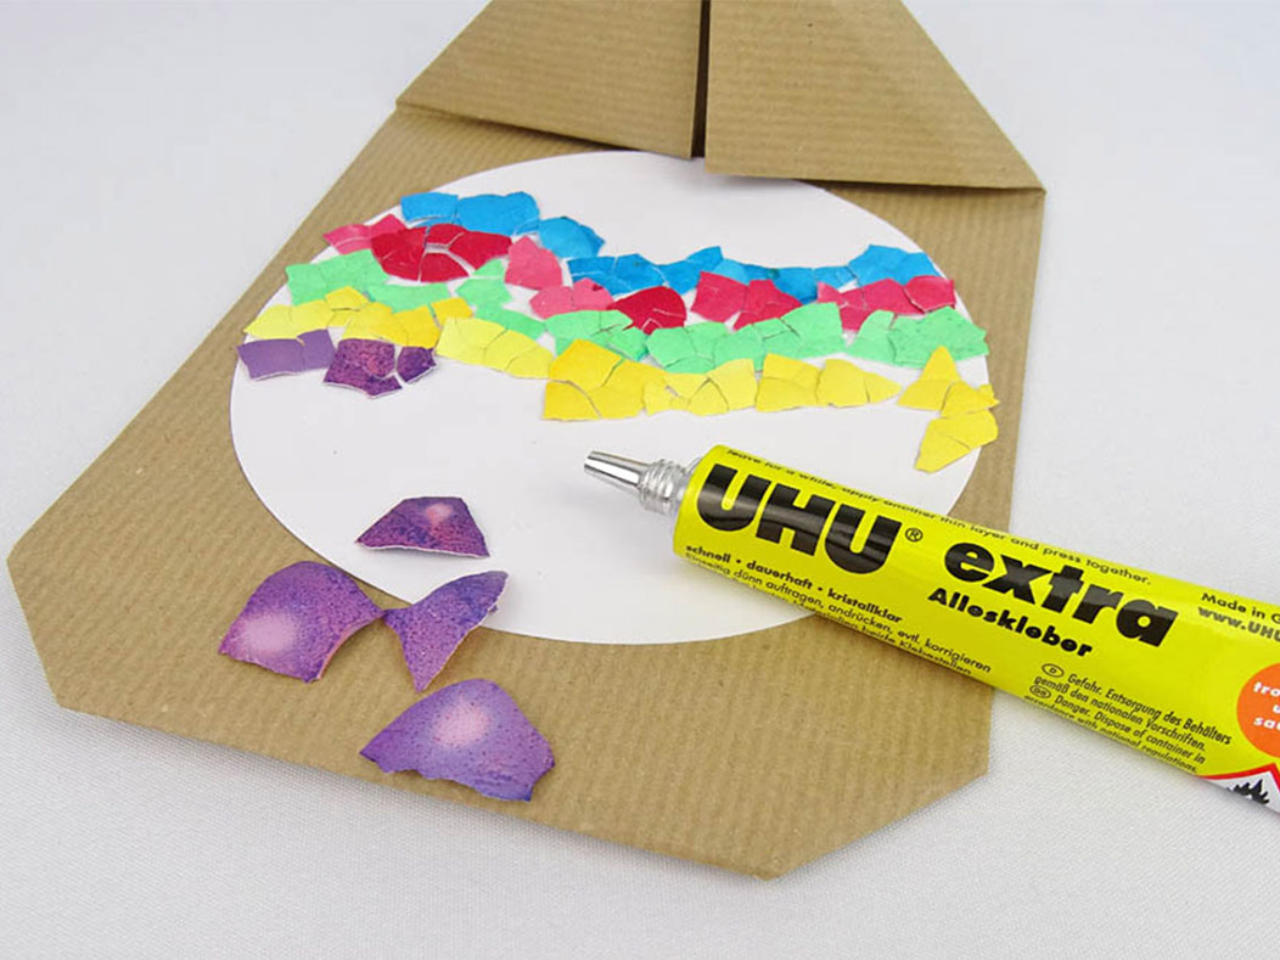 UHU ALL PURPOSE ADHESIVE